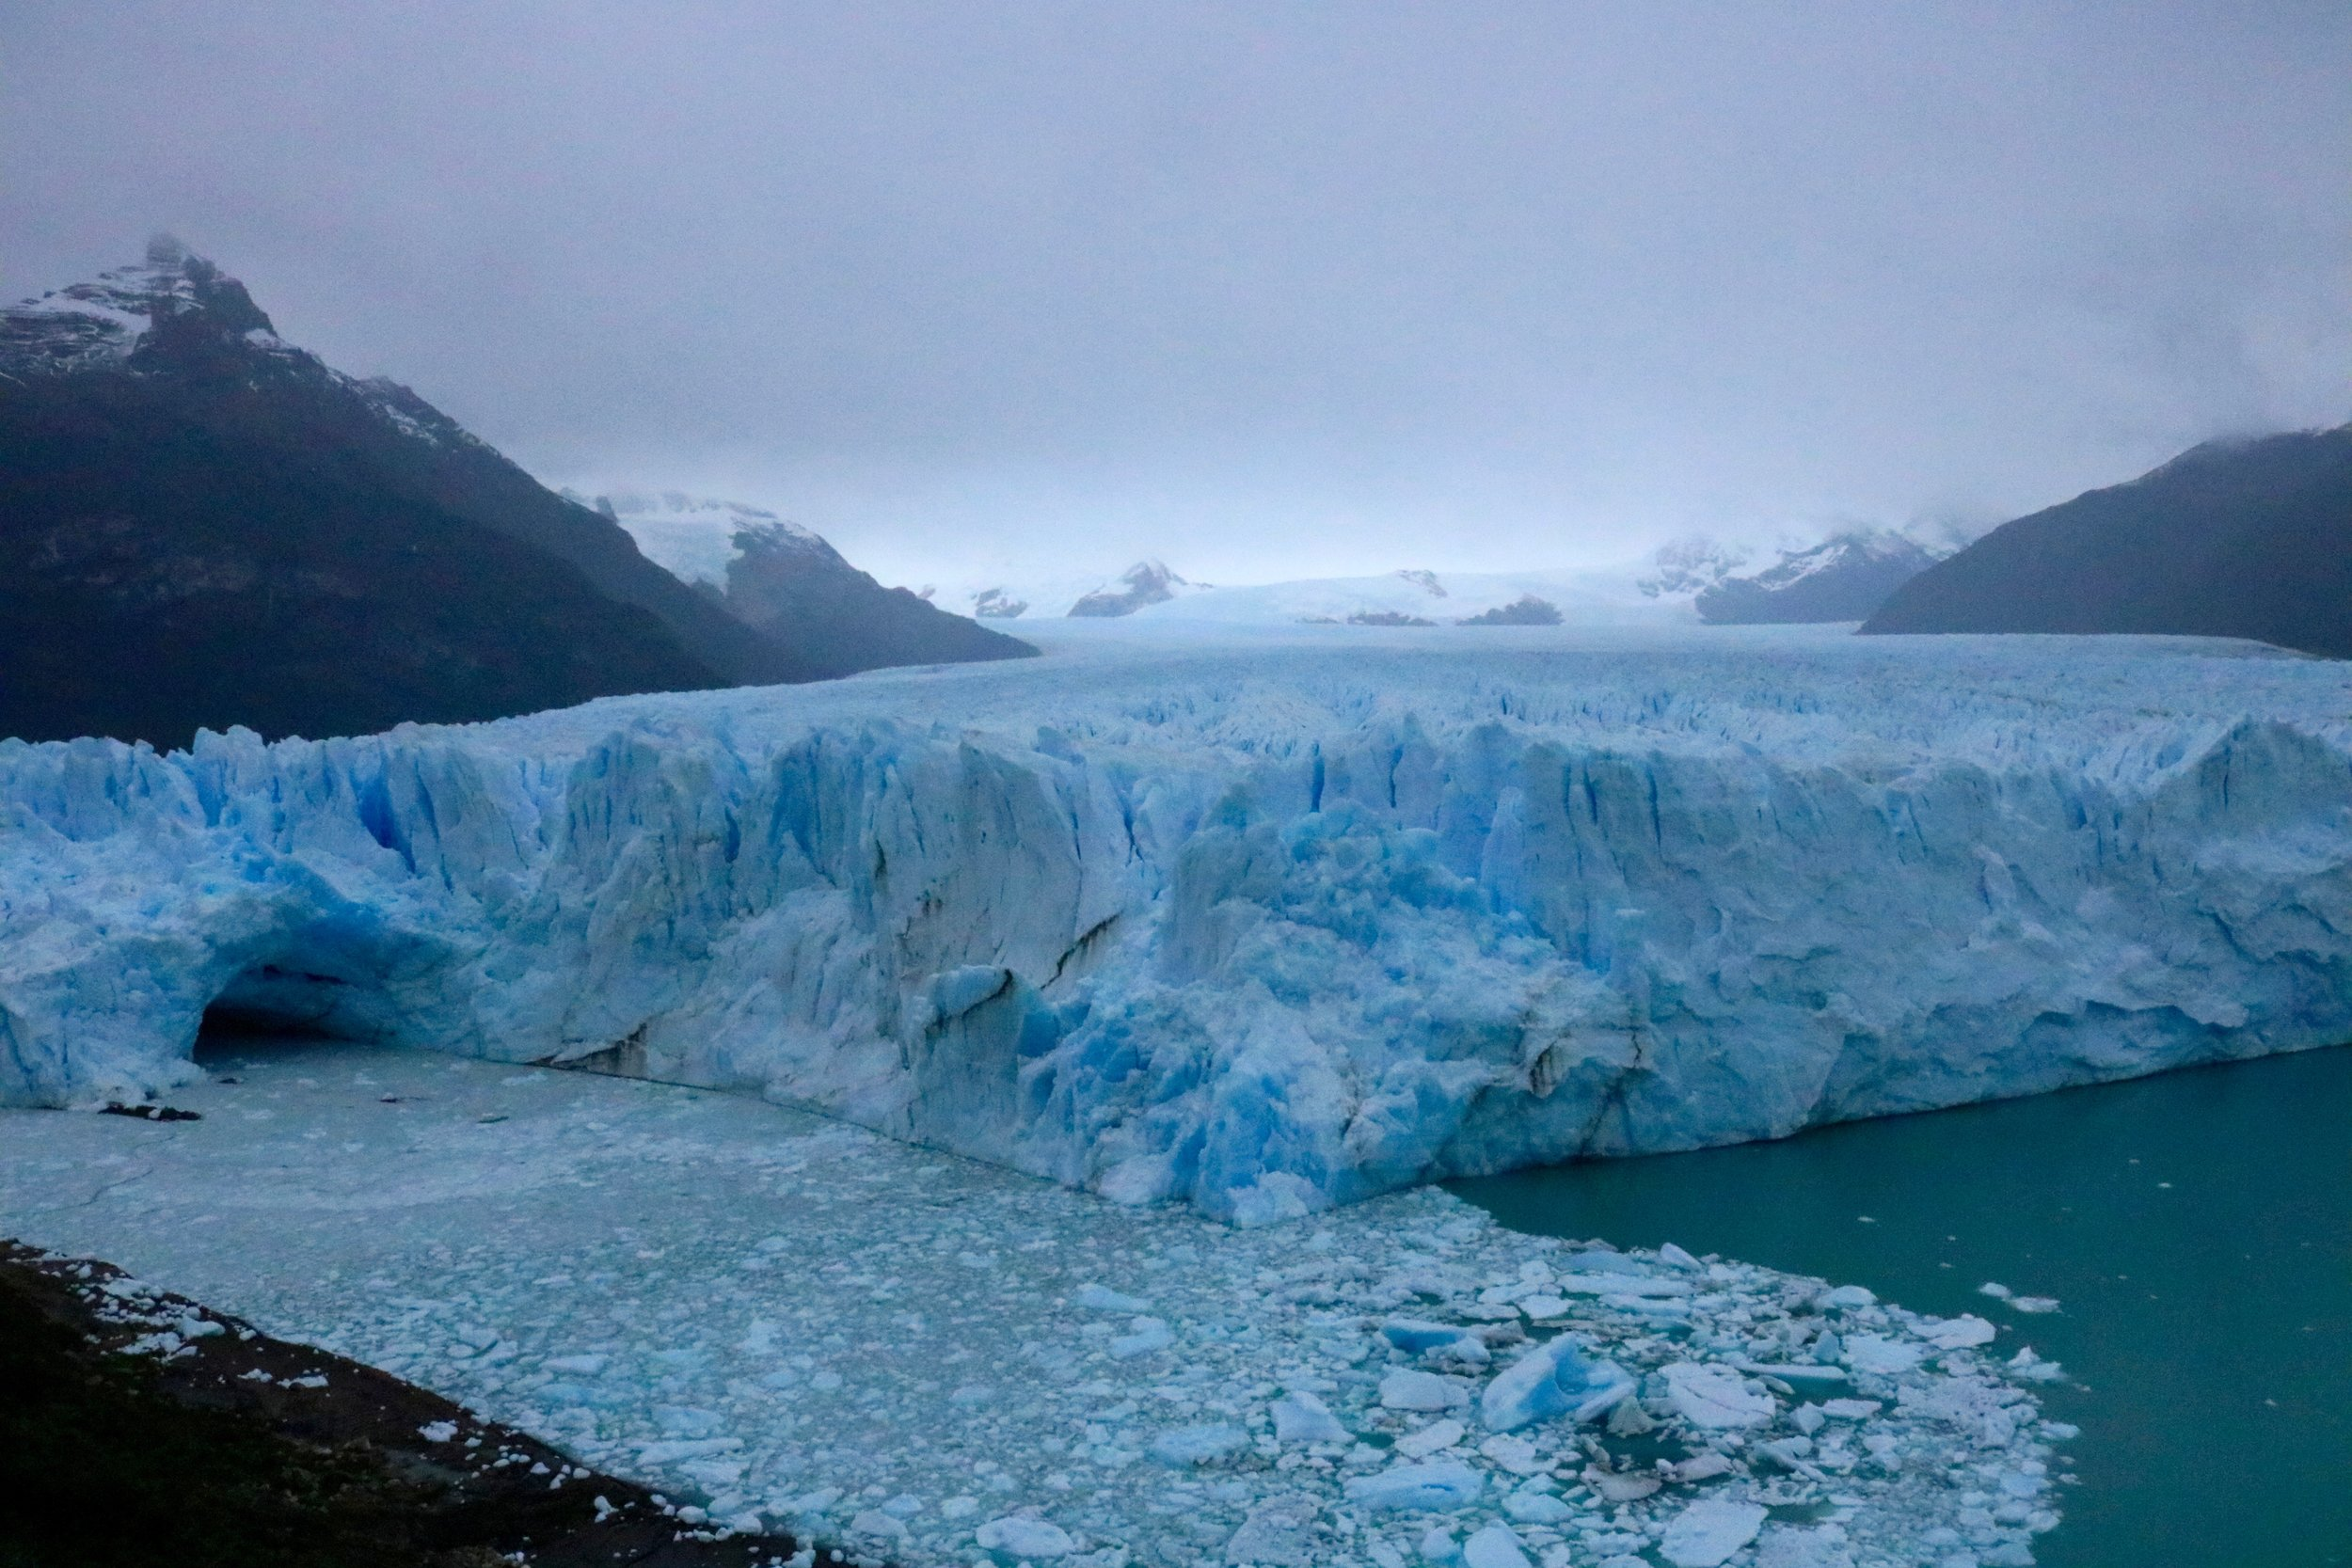 The glacier at El Calafate is breathtaking.  I took a boat out to get a closeup view of the glacier, the calving ice makes the most incredible thundering sound.  And the blue ice and water hasn't been edited, that is what it looks like.  So beautiful.